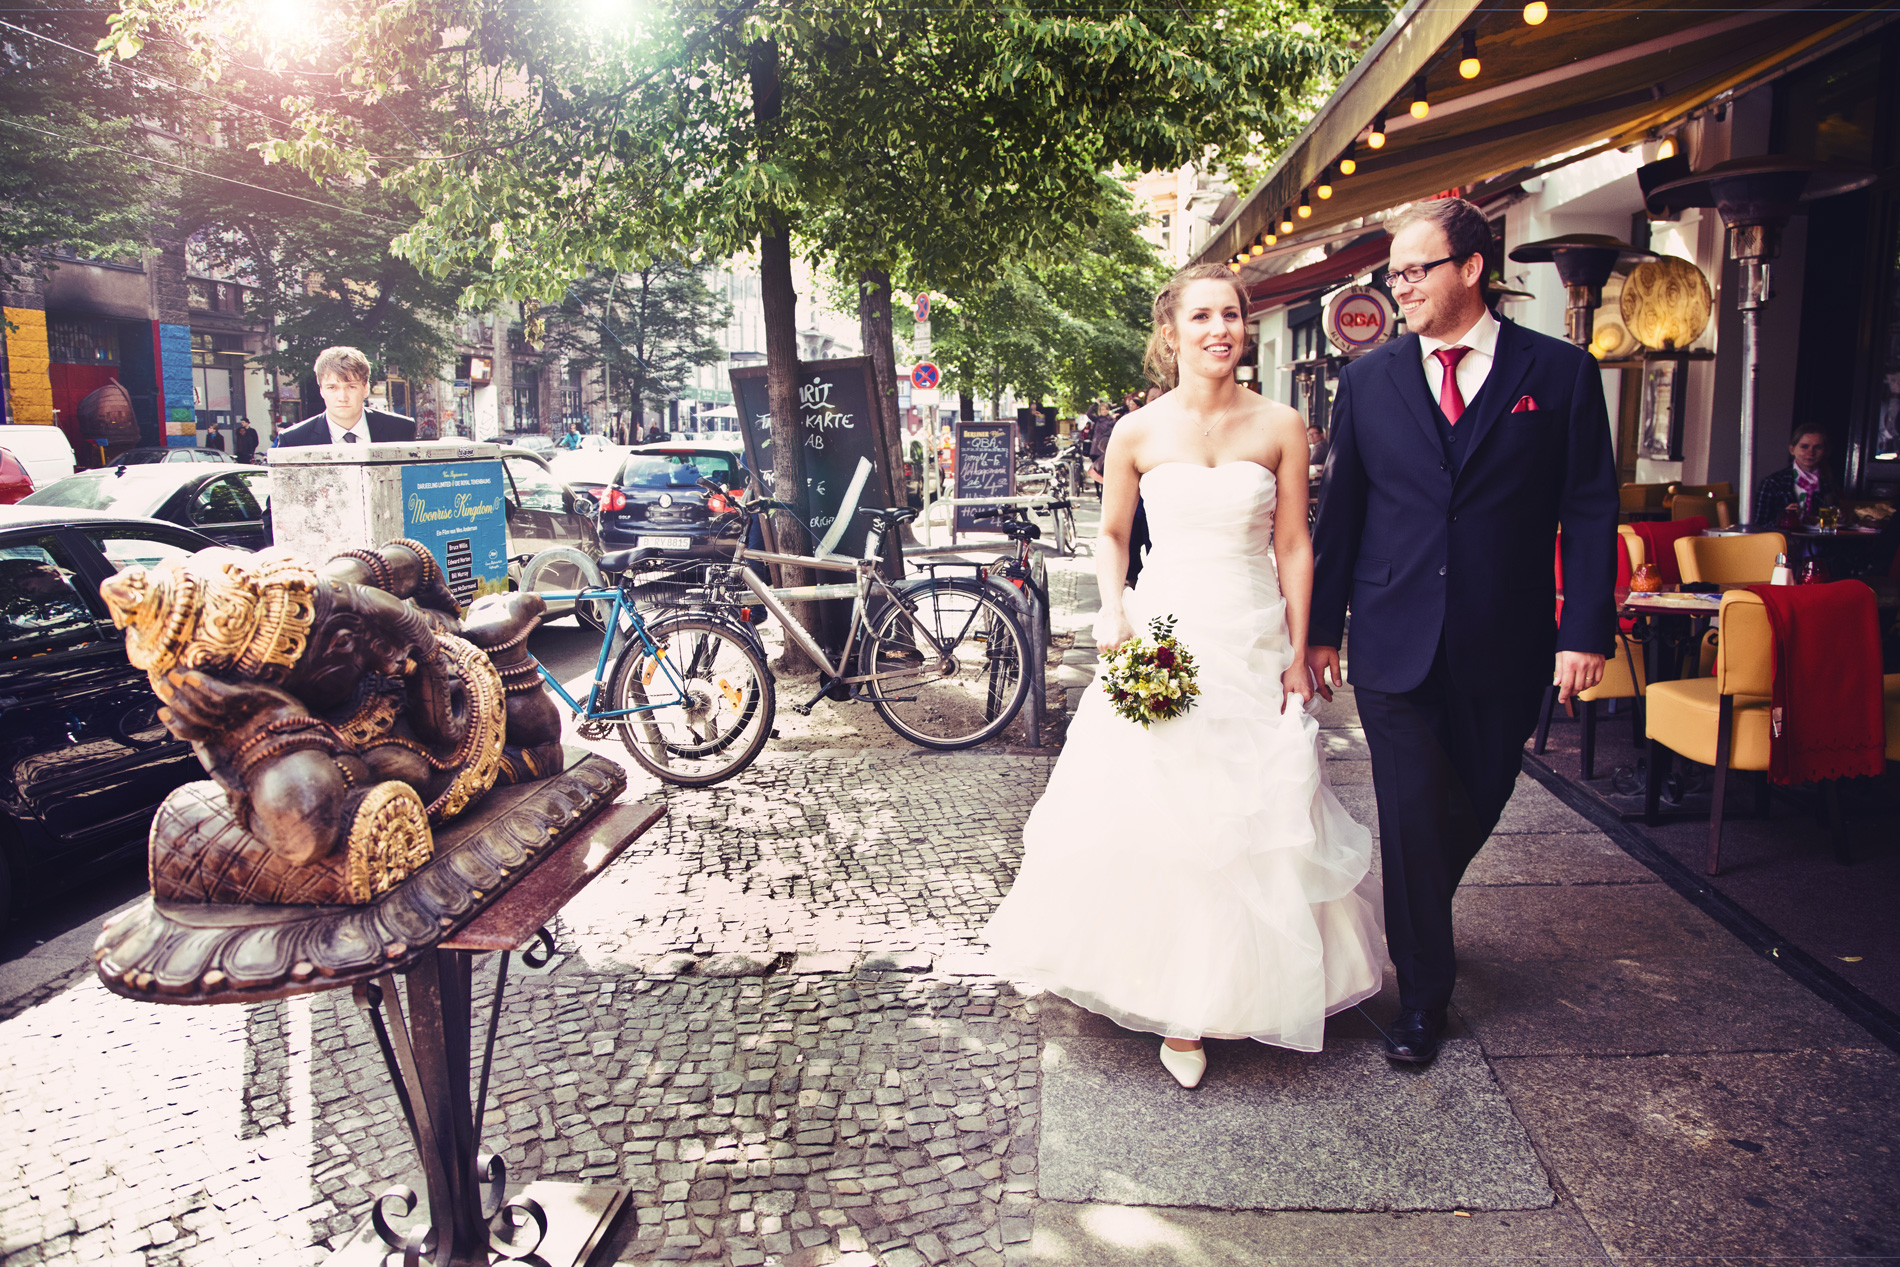 Gitarrenunterricht berlin wedding